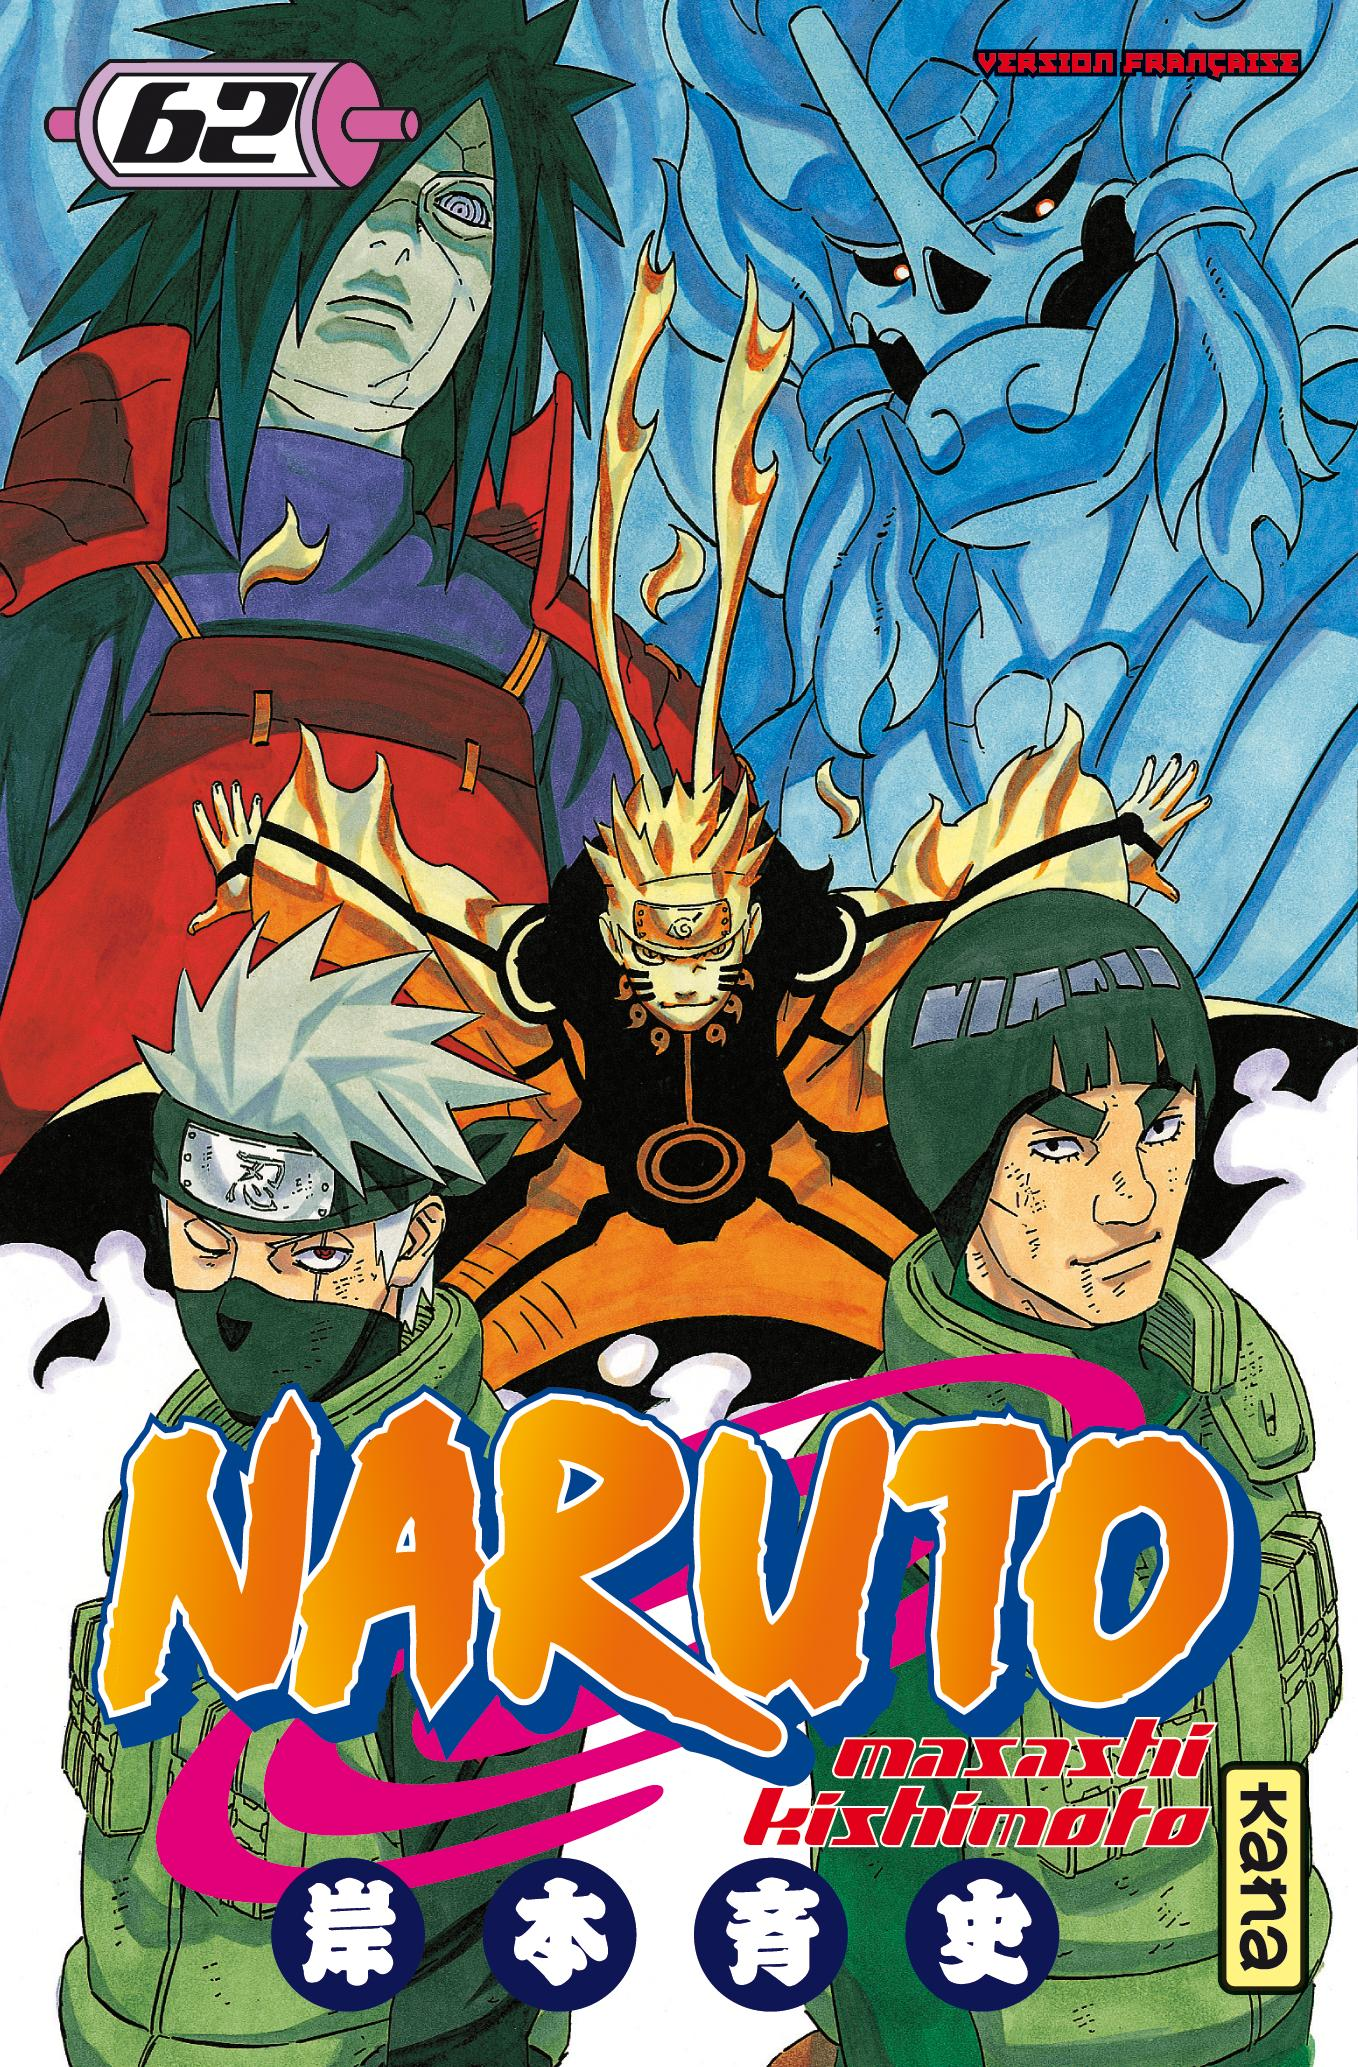 naruto-manga-volume-62-simple-76783.jpg